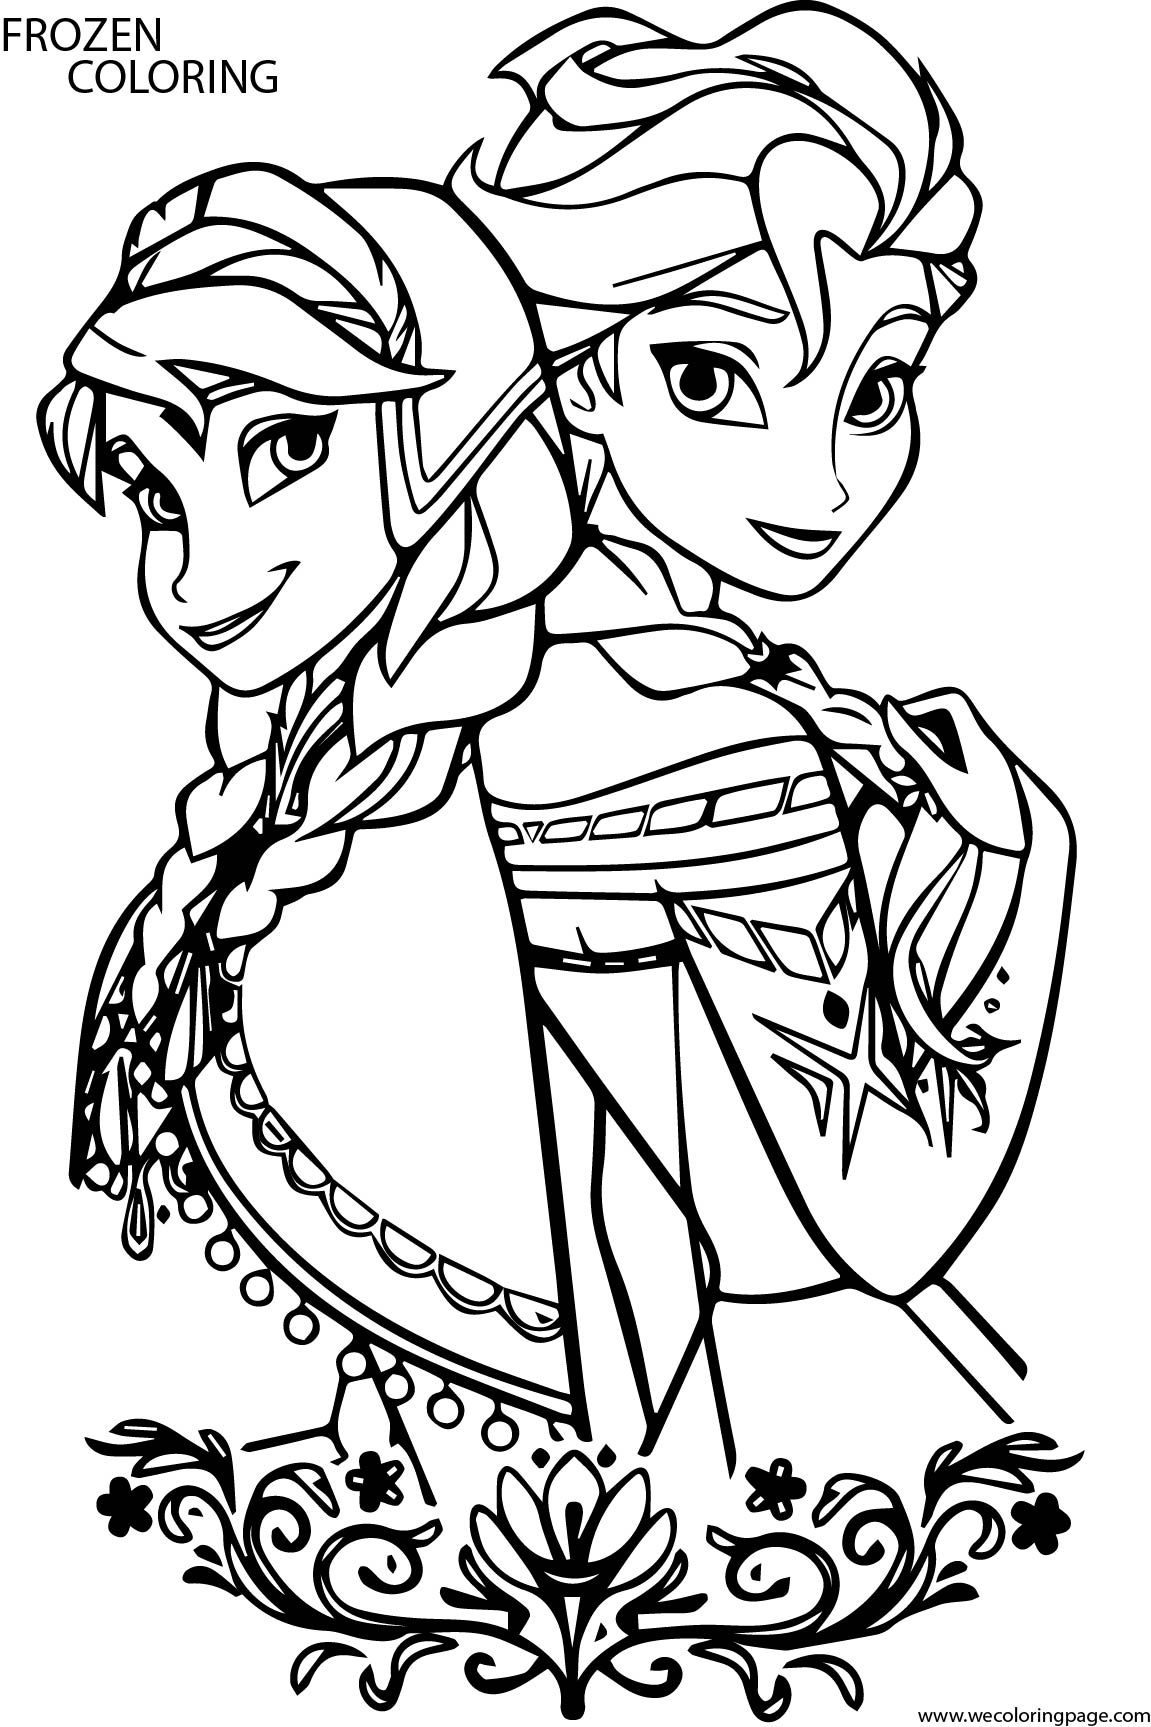 pictures of frozen free printable frozen coloring pages for kids elsa of pictures frozen